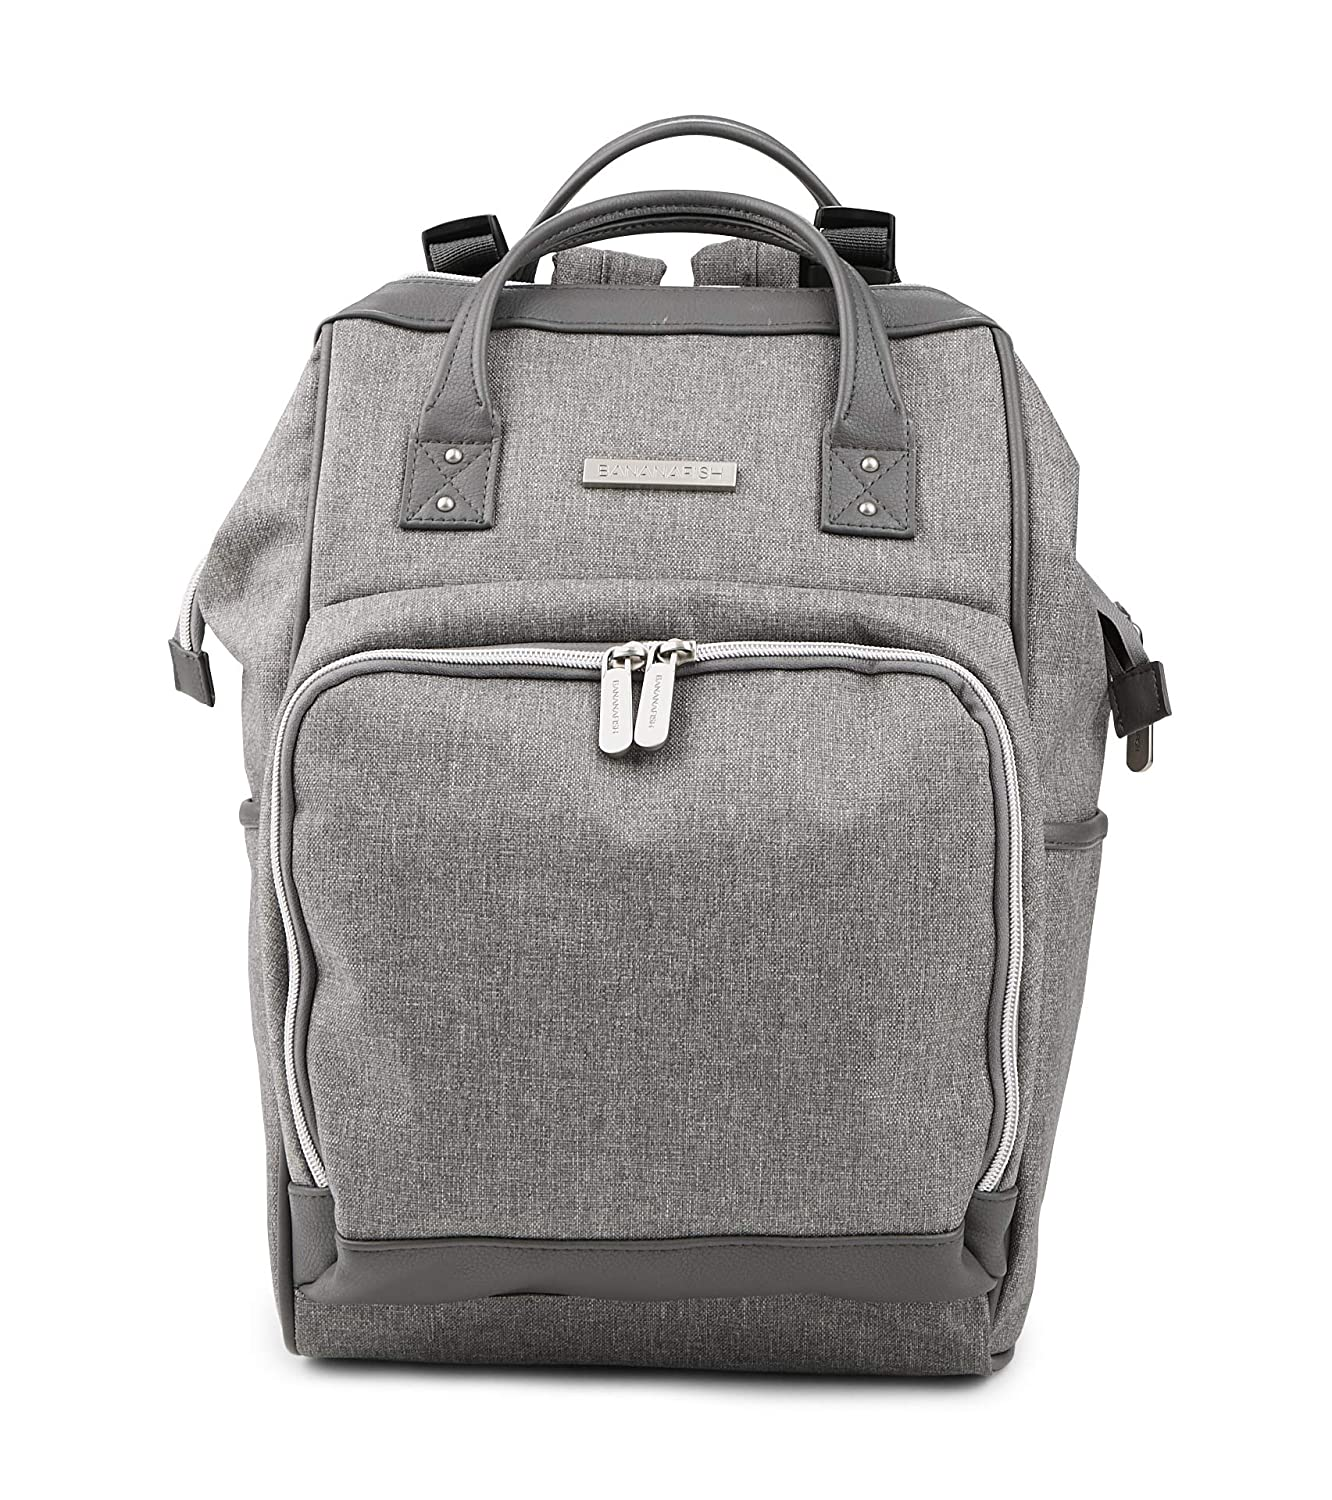 Multi-Function Design Nappy Bag for Baby Care or Travel - Carry or Wear as Backpack - Large Capacity in Trendy, Stylish Design, Light Grey